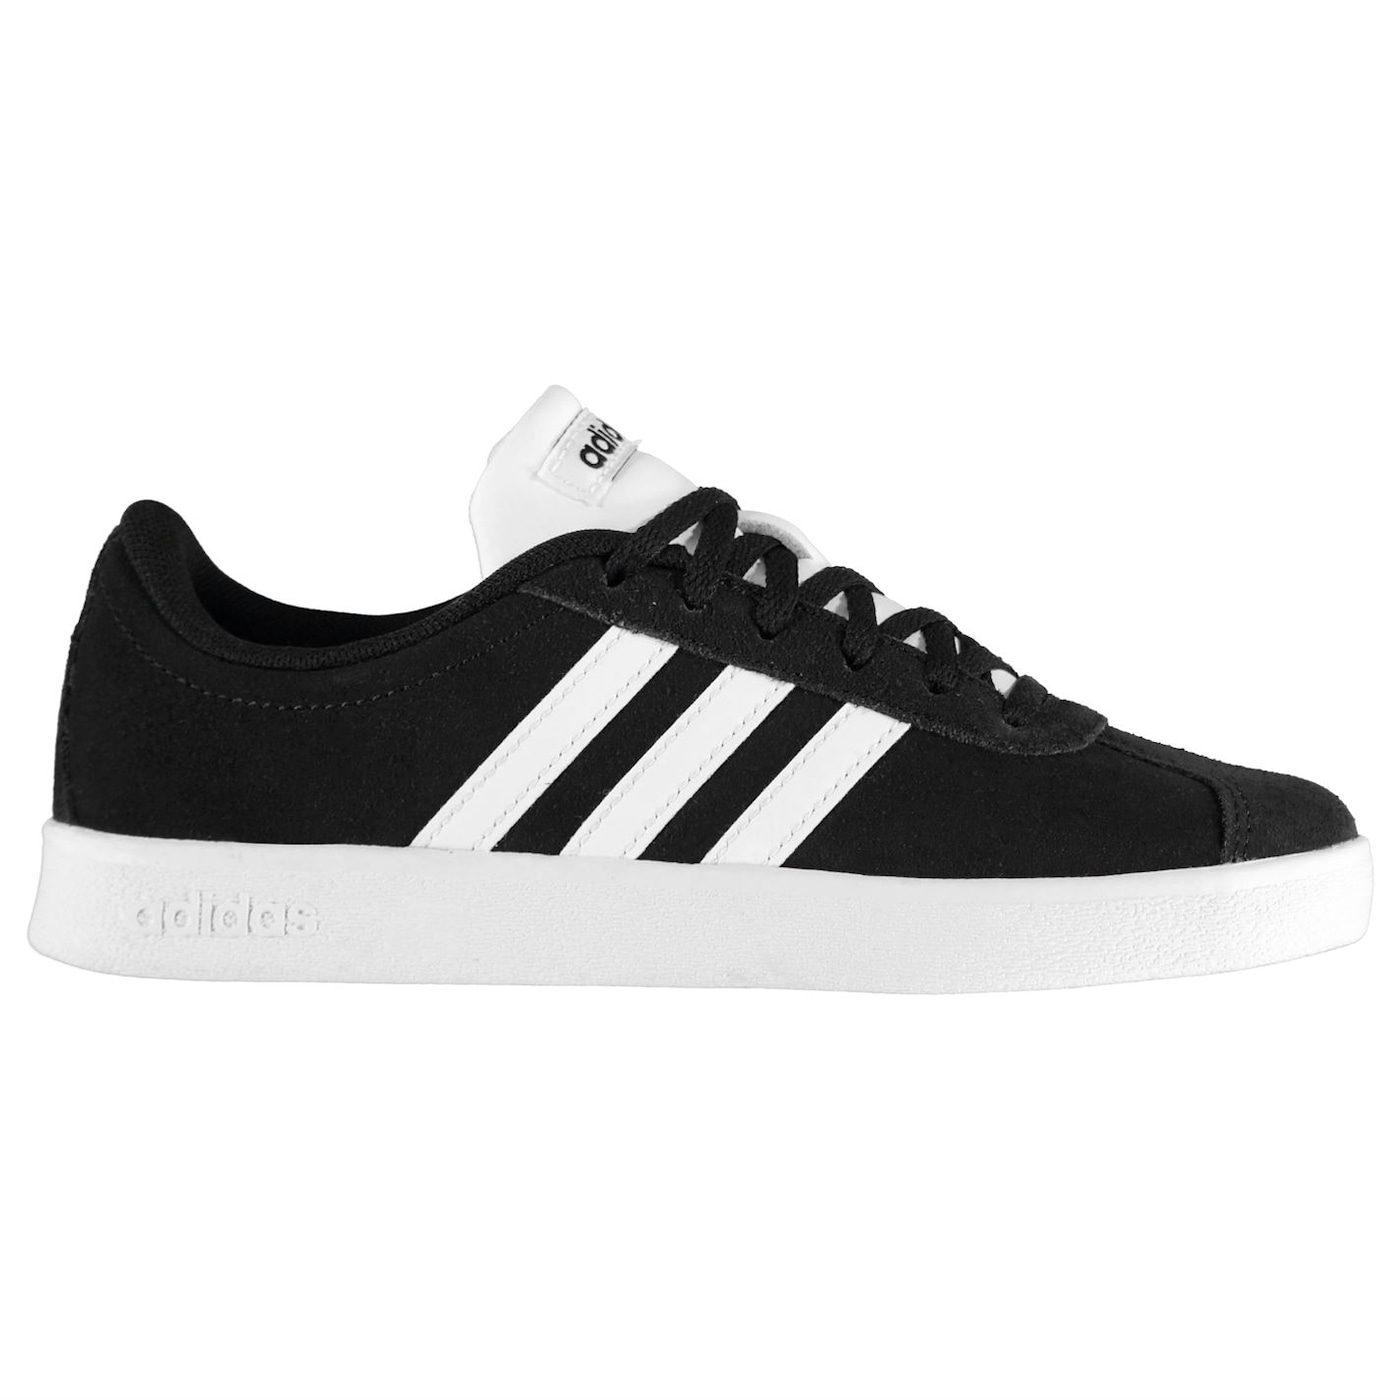 Adidas VL Court Suede Childrens Trainers